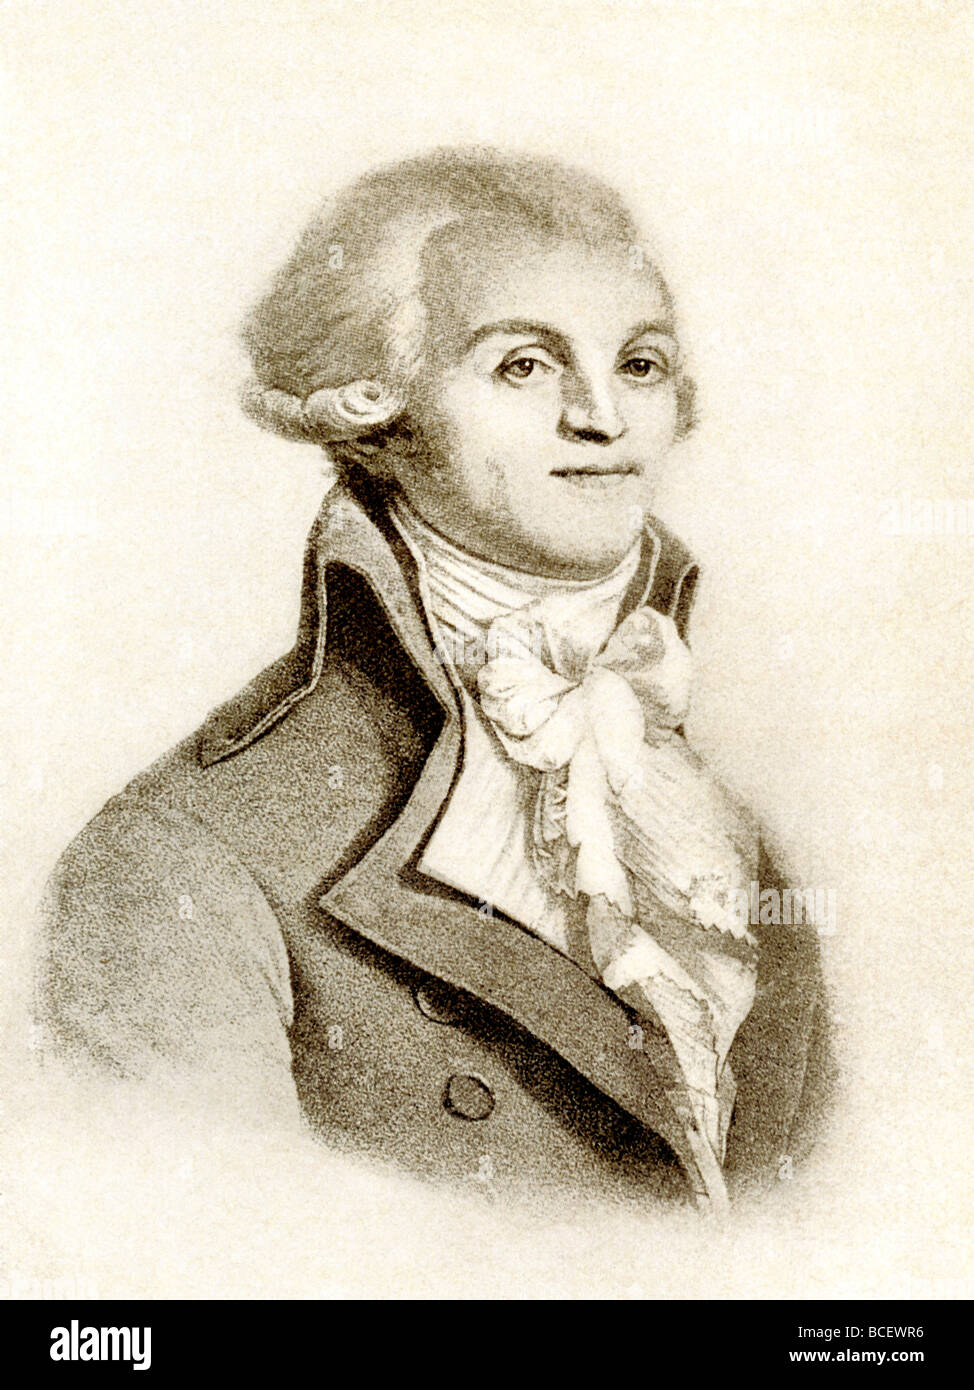 French revolutionary Maximilien Robespierre (1758,1794) was the leader of  the Jacobins and key in the Reign of Terror